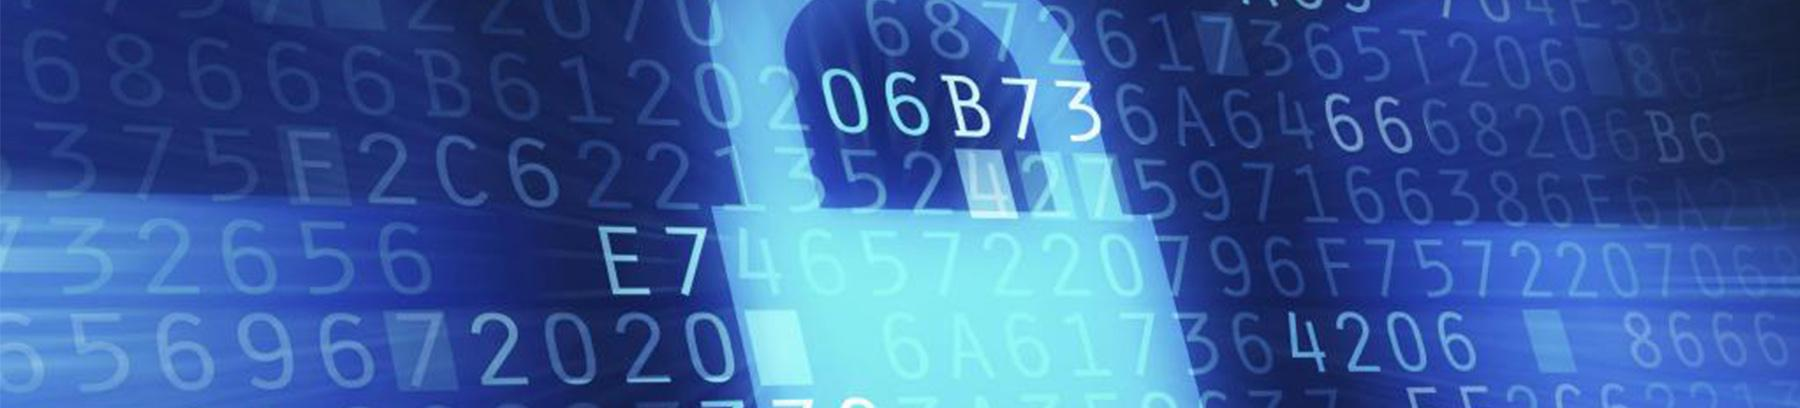 Cybersecurity, Virtualization and Forensics Program